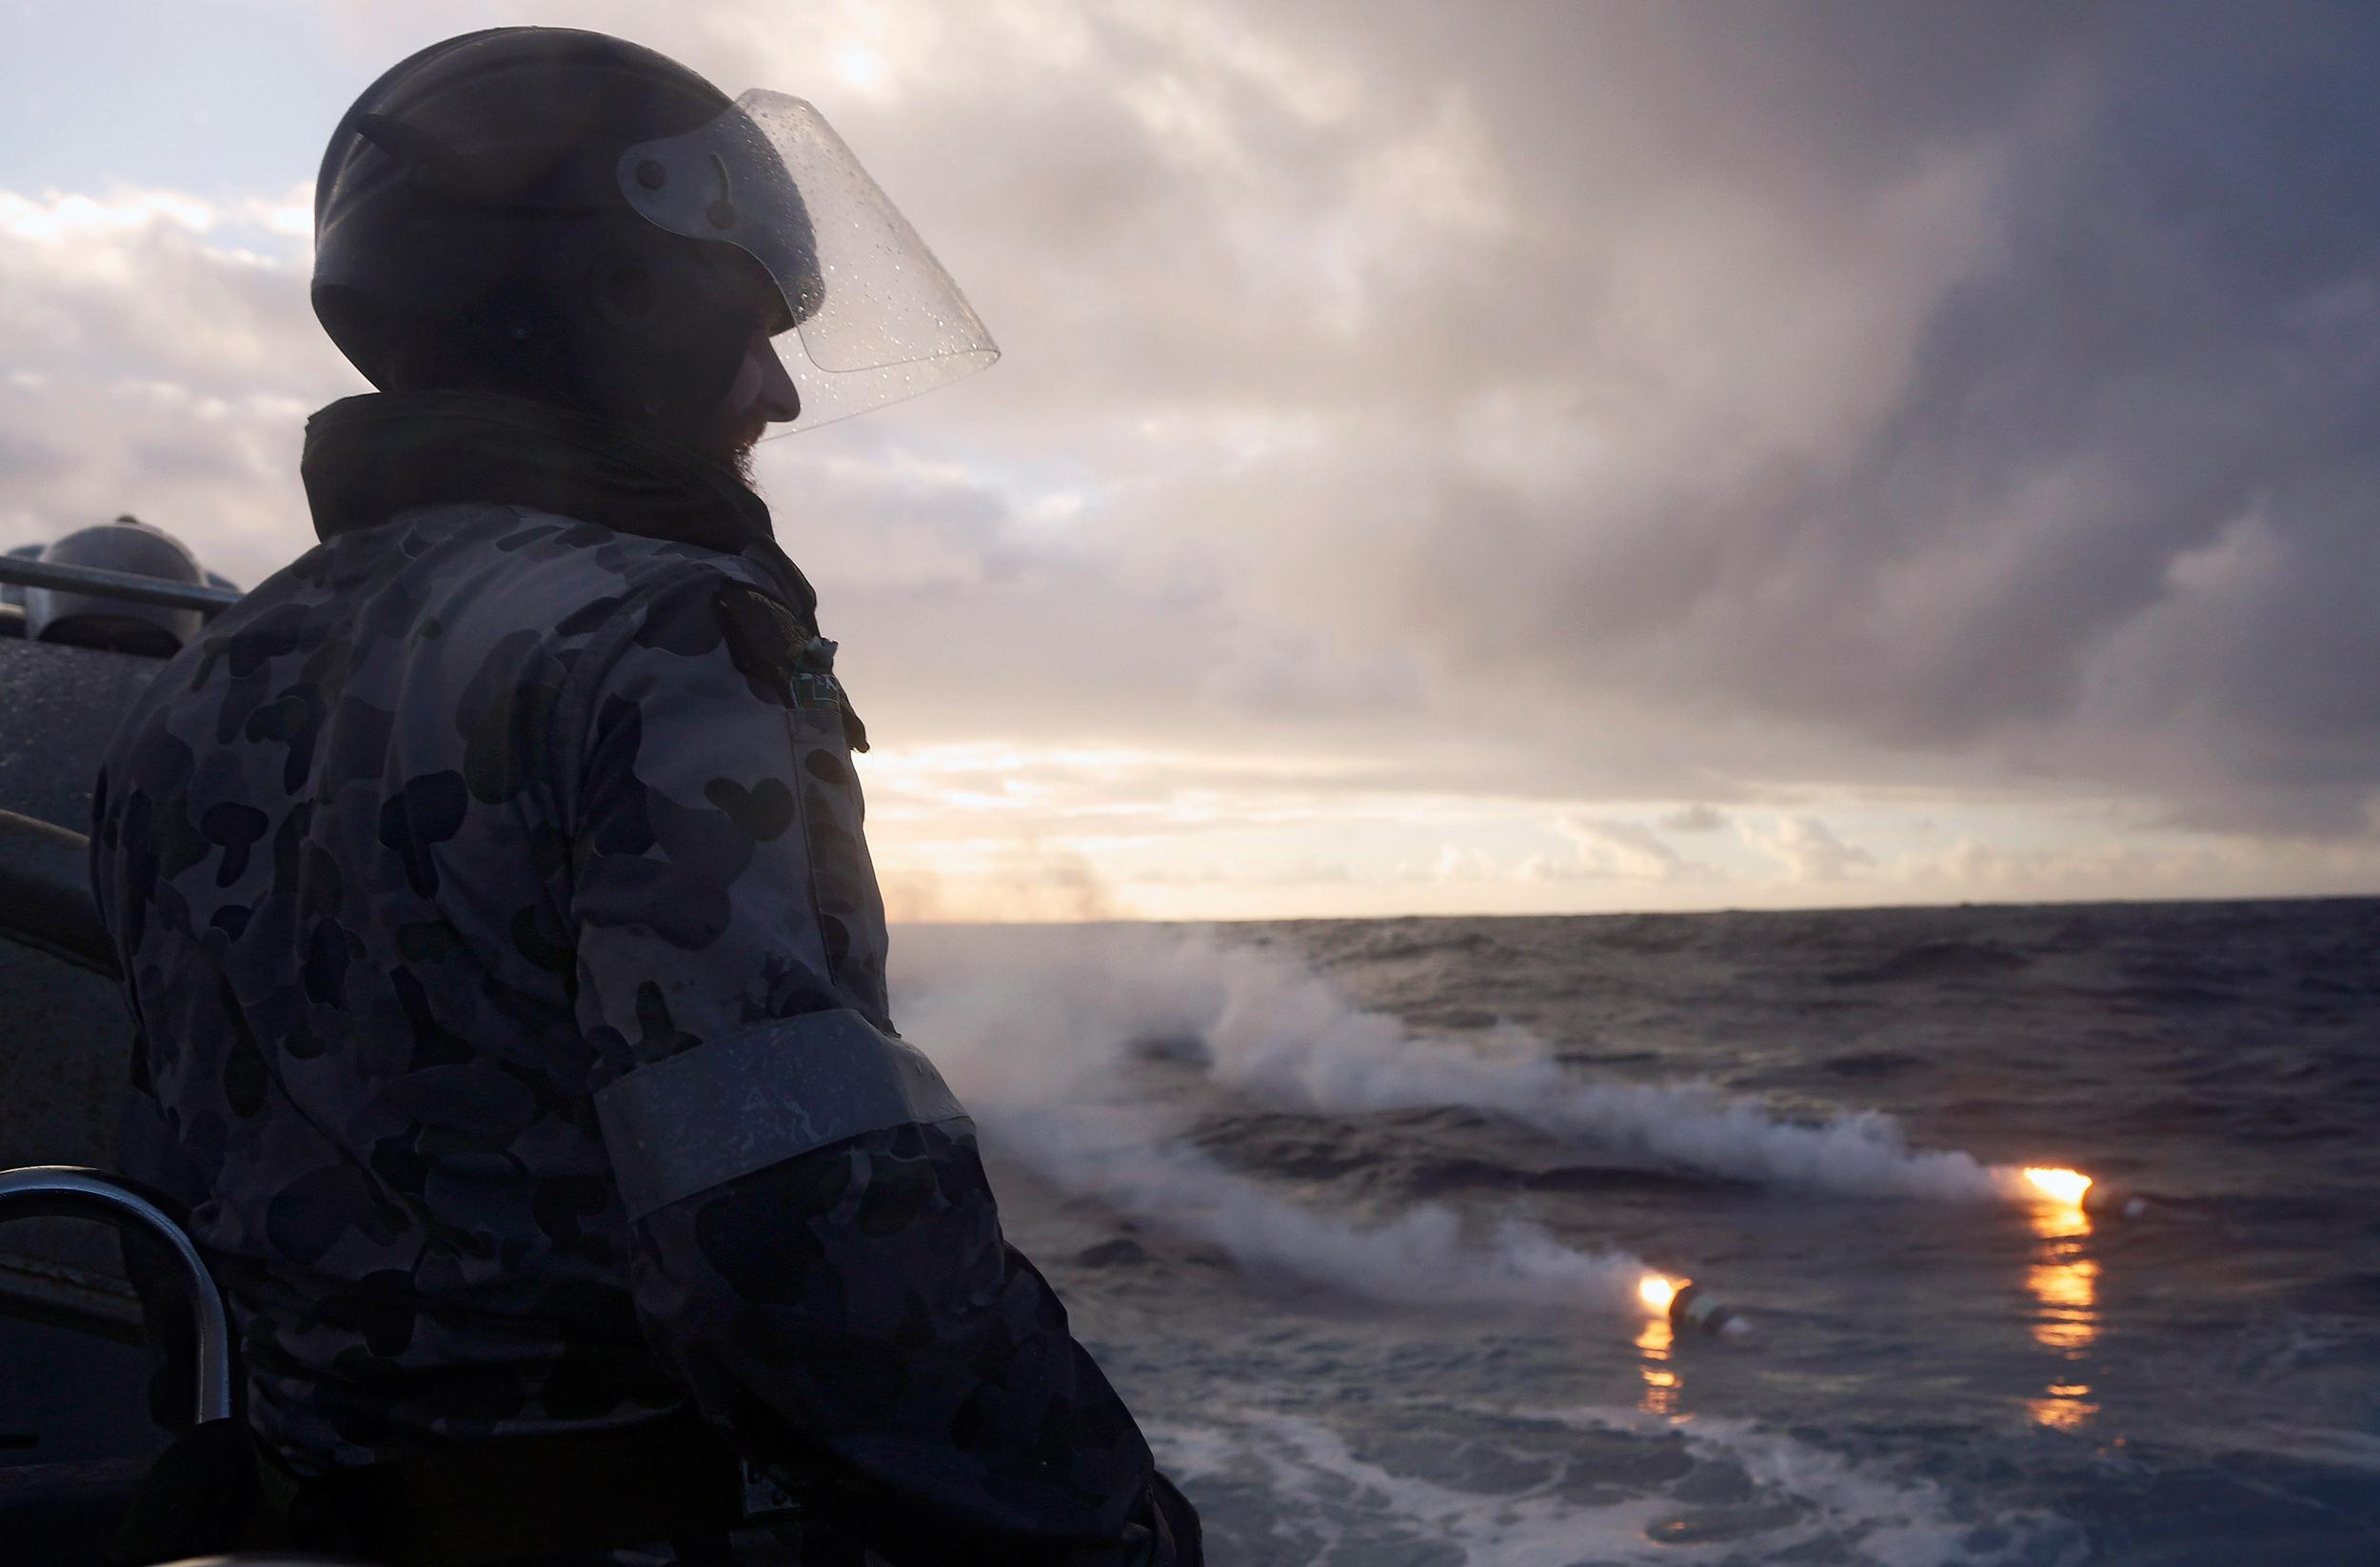 Image: Boatswain's Mate, Able Seaman Morgan Macdonald, observes markers dropped from a RNZAF P3K Orion after an object was sighted in the southern Indian Ocean during the continuing search for the missing Malaysian Airlines flight MH370